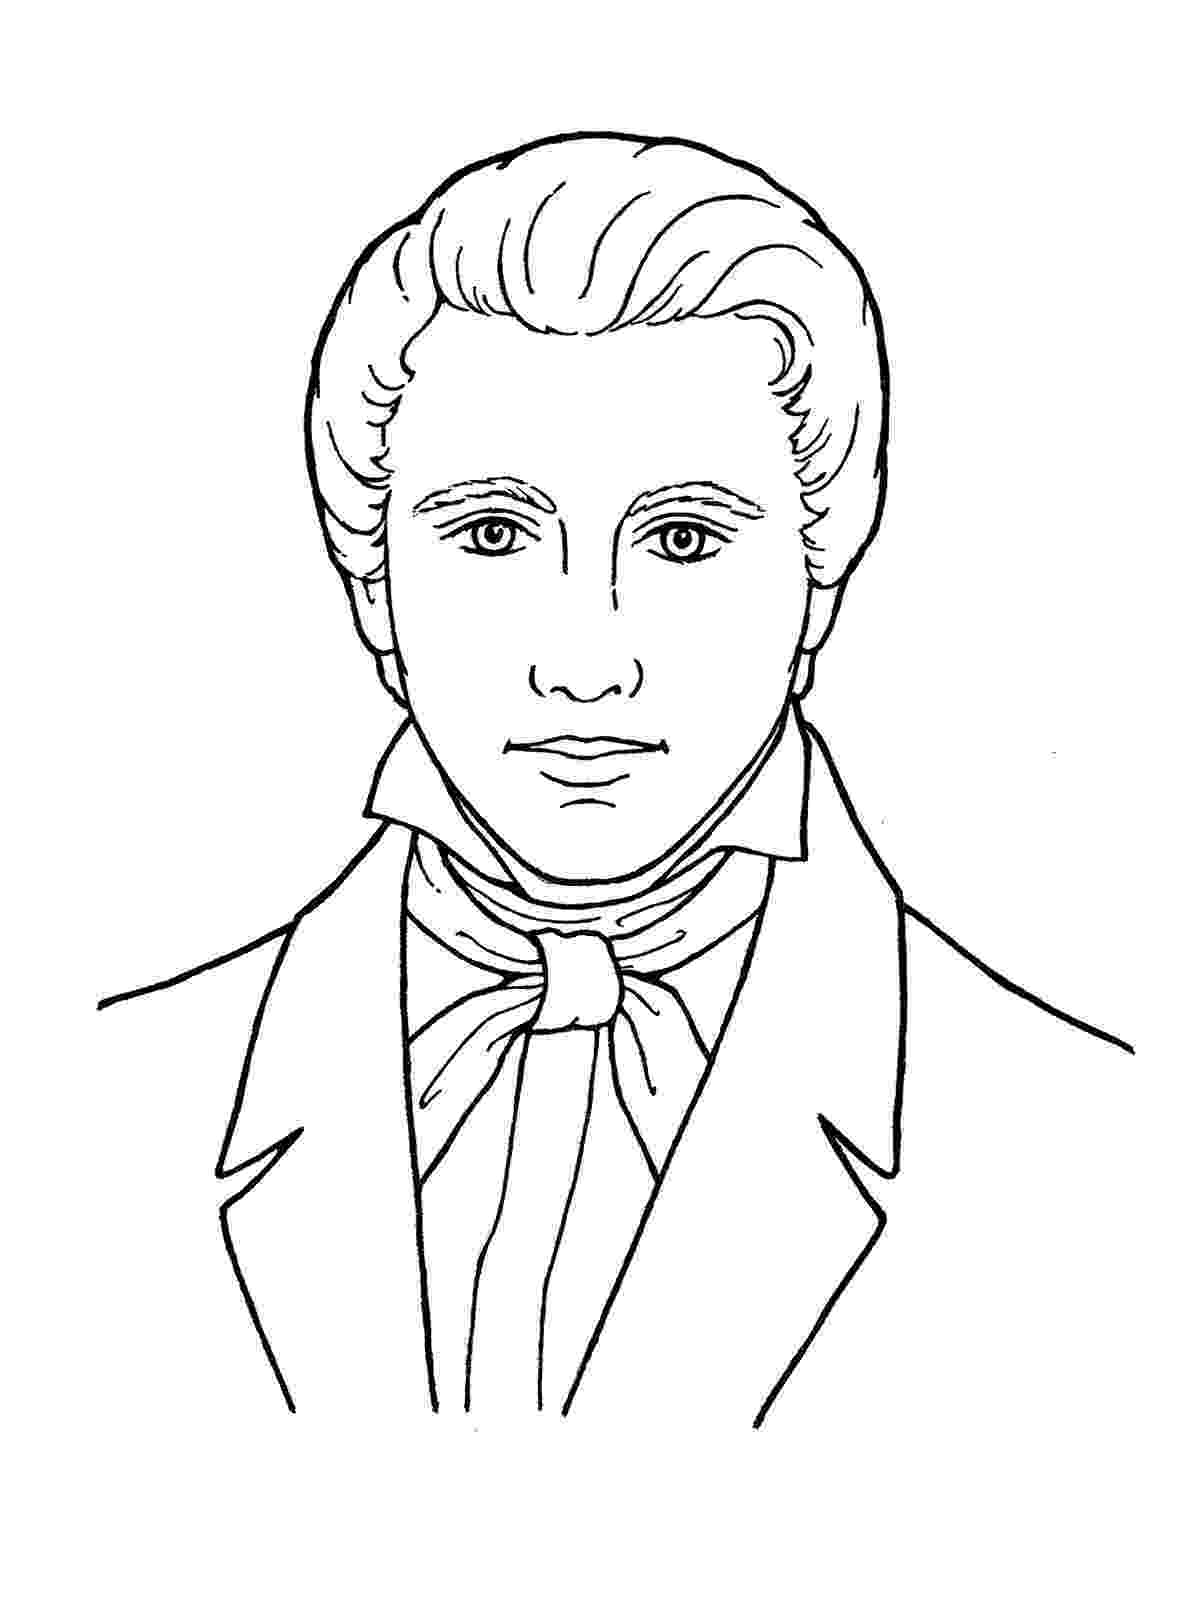 joseph smith coloring pages 67 joseph smith first vision coloring page awesome click coloring joseph smith pages